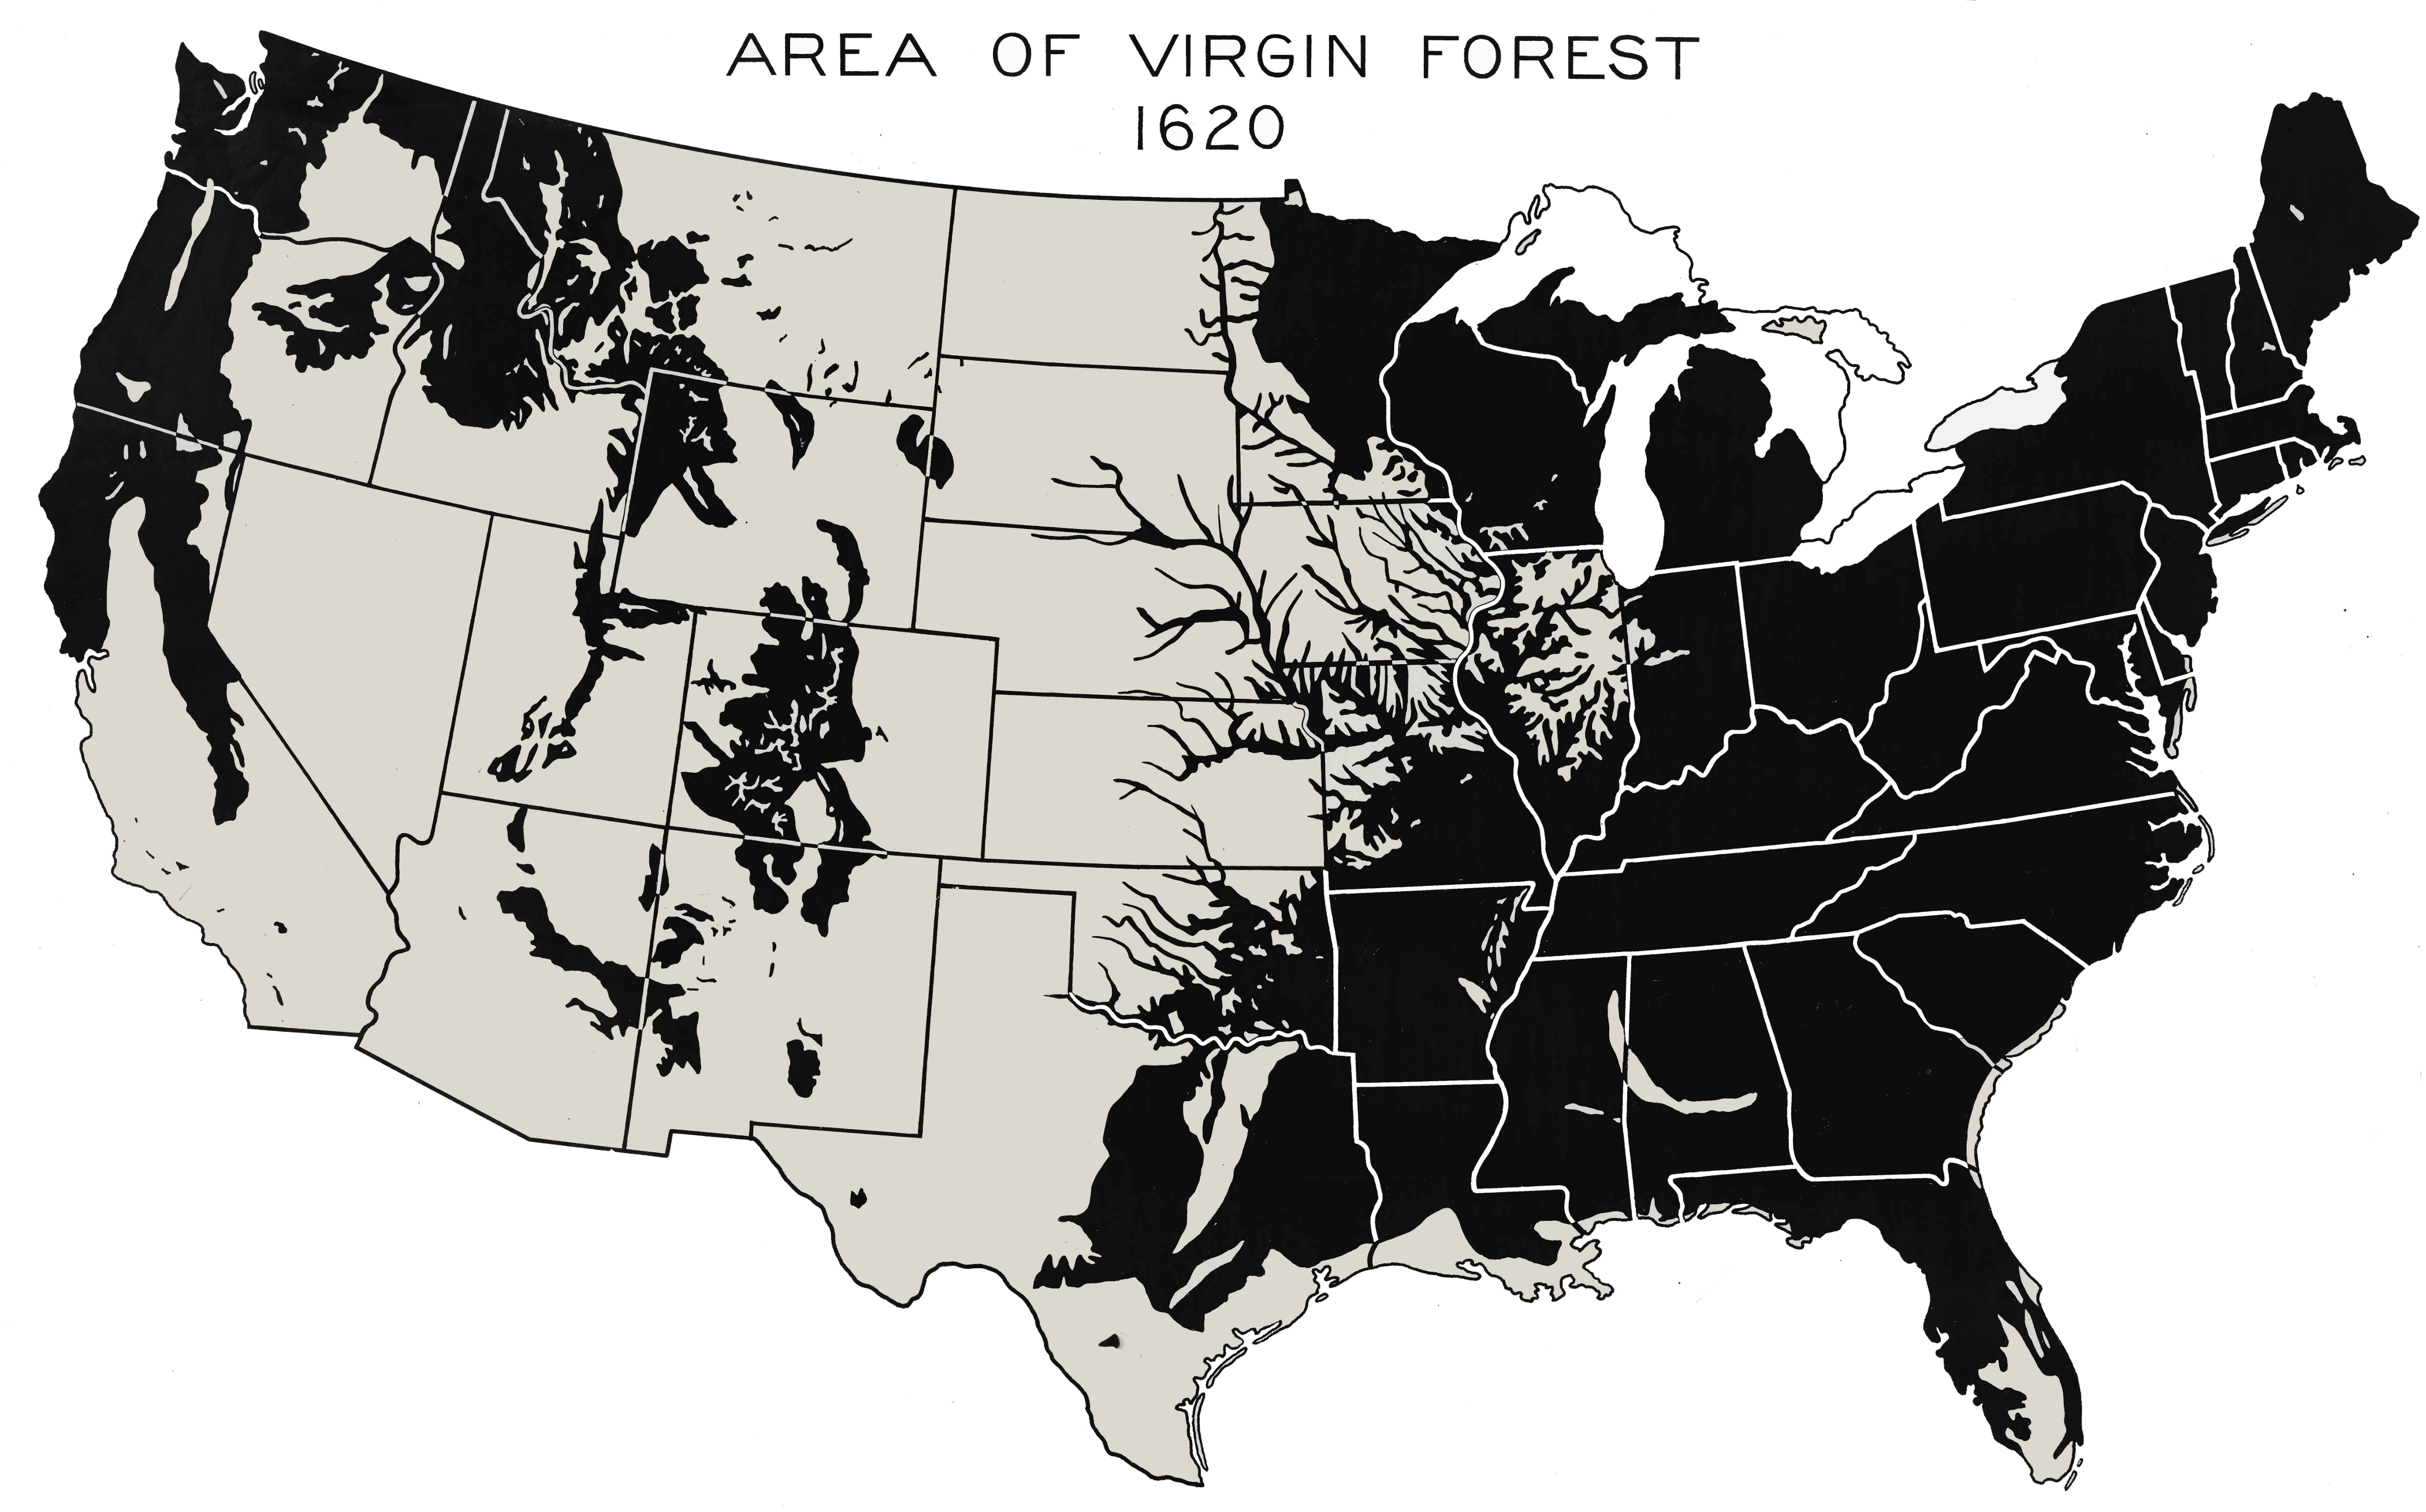 Deforestation in the United States - Wikipedia on ecological succession map, climate change, hydroelectric dams map, land pollution, transboundary pollution map, environmental issue, world map, ozone depletion, exploitation of natural resources, global warming map, land degradation, groundwater depletion map, pesticide use map, greenhouse gas, species extinction map, glacier melt map, global warming, ecological footprint map, environmental degradation, water depletion map, tree plantation map, intensive farming map, danish language map, illegal logging, mass extinction map, forest reserves map, land use map, indoor air pollution map, environmental problems map, genetically modified crops map,